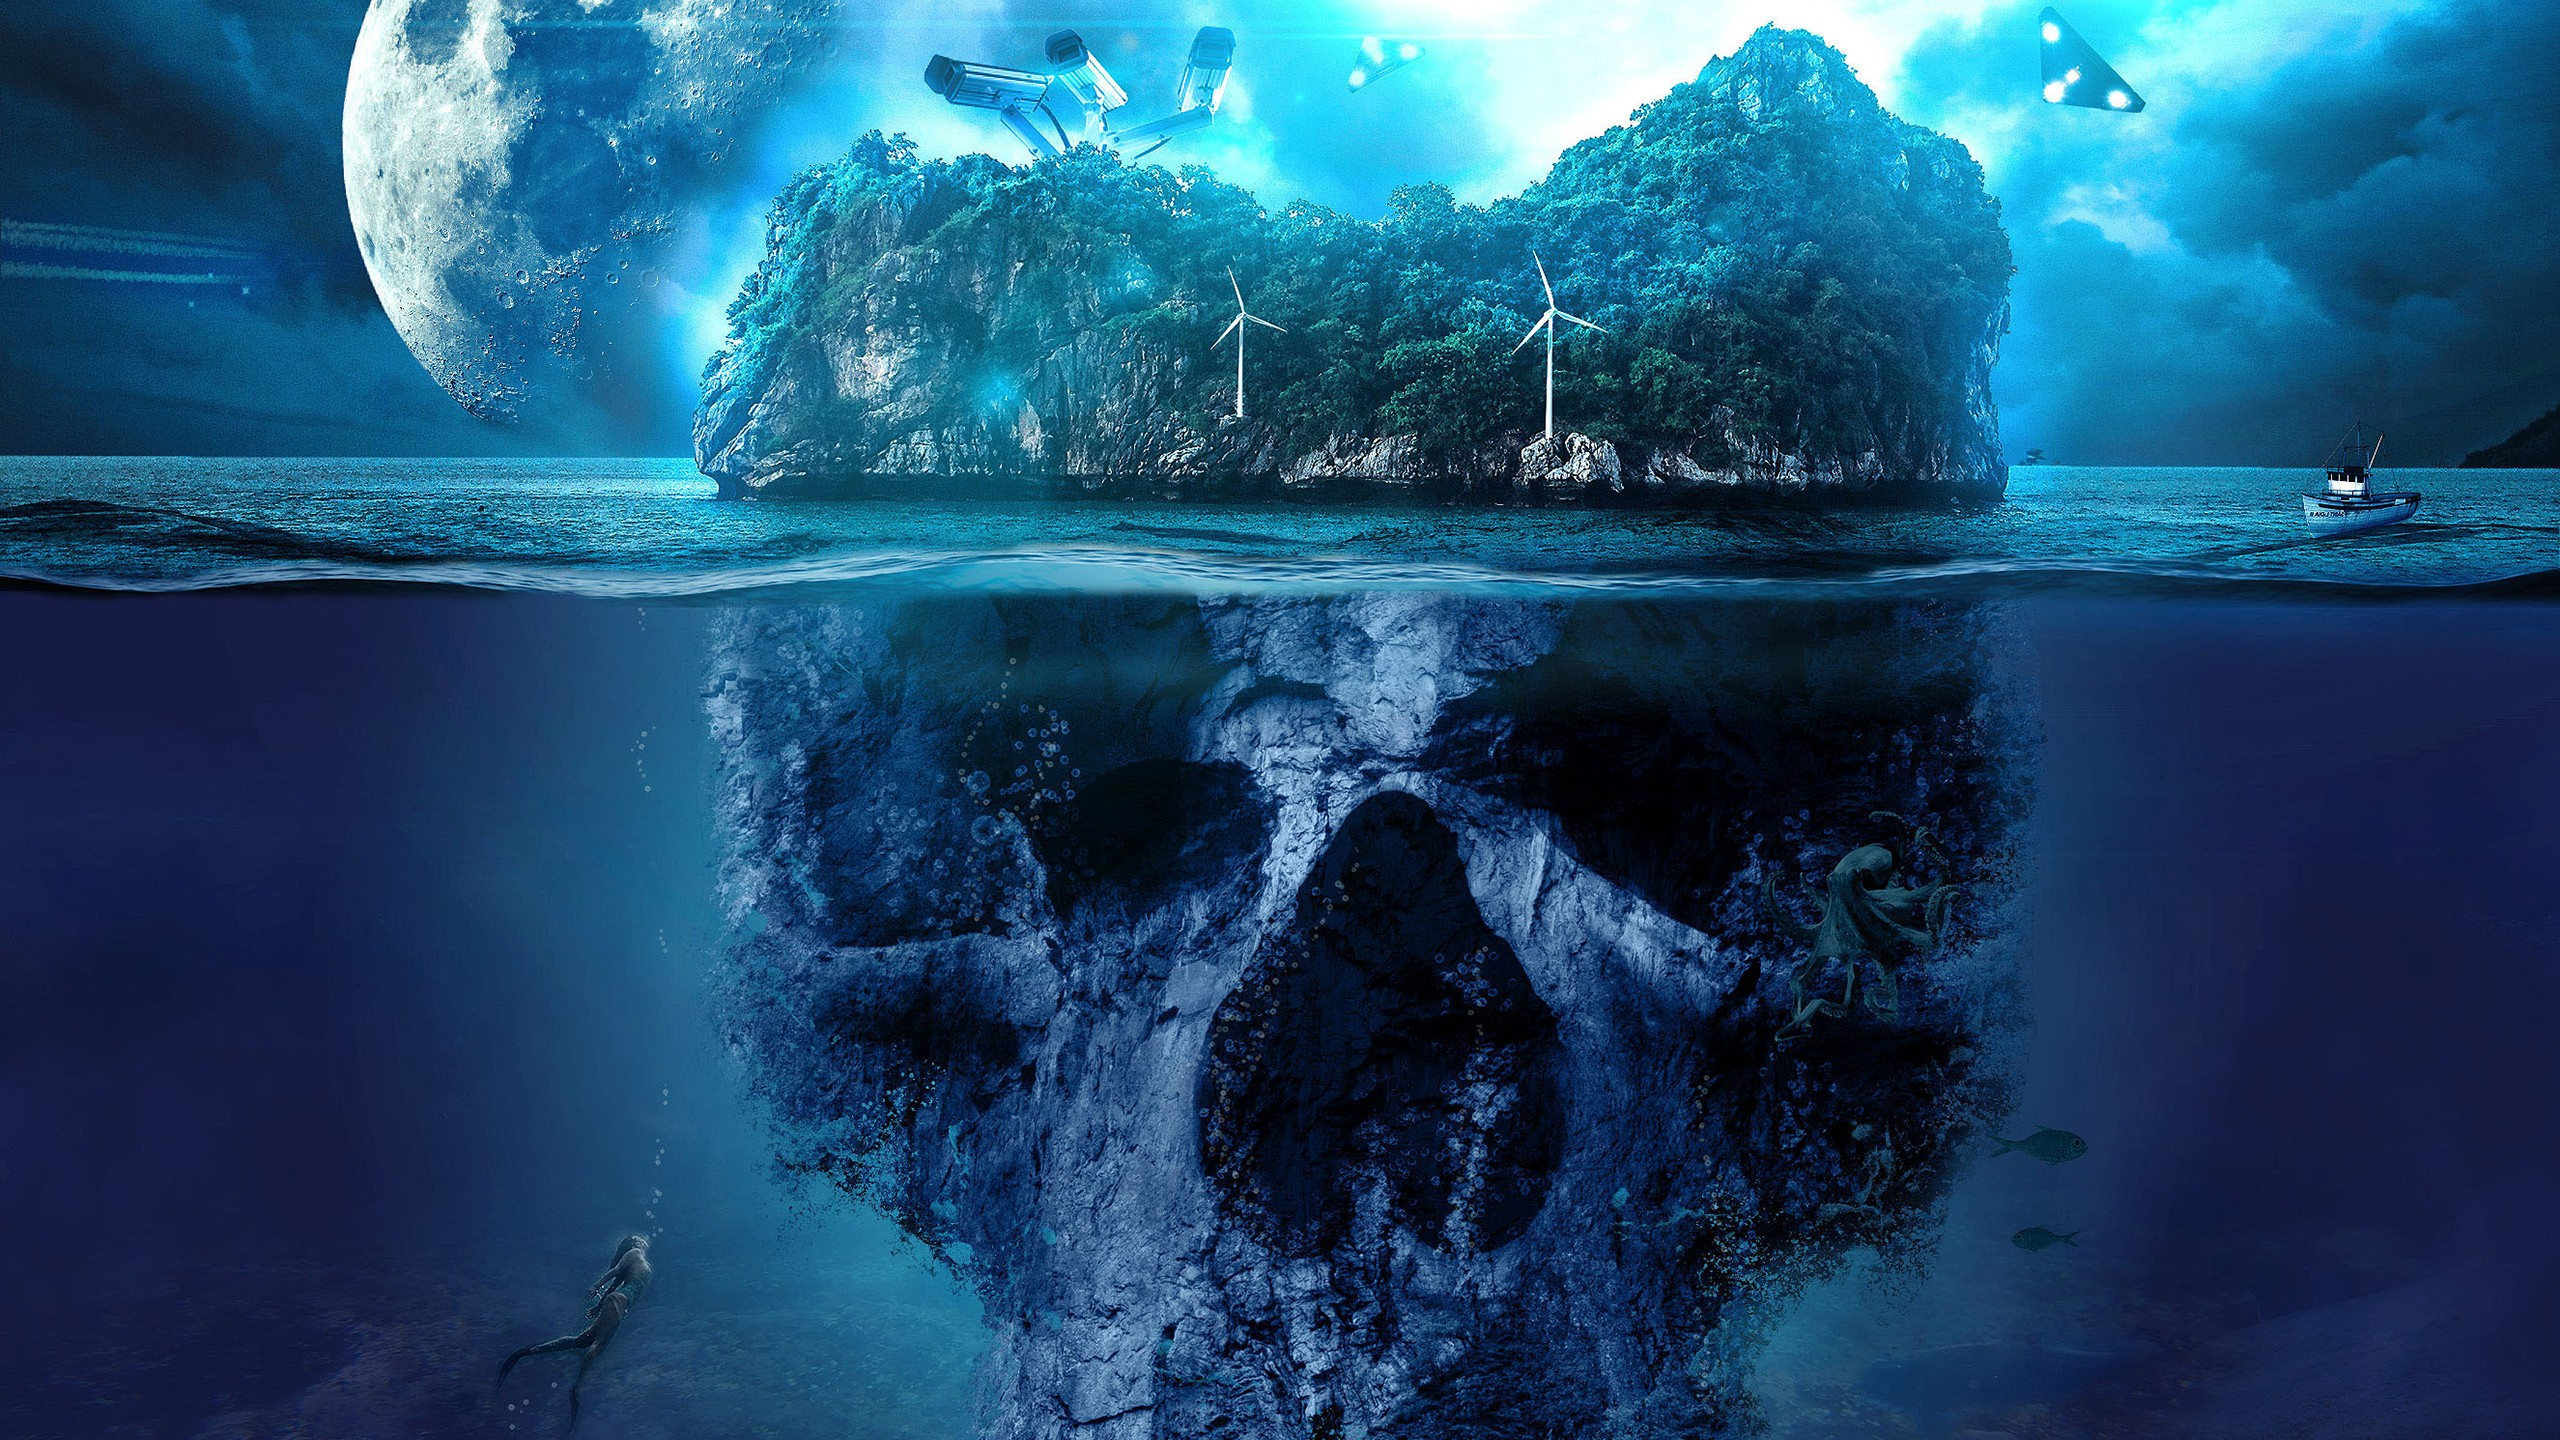 Space Iphone 6s Wallpaper Mystery Skull Island Wallpapers Hd Wallpapers Id 27263